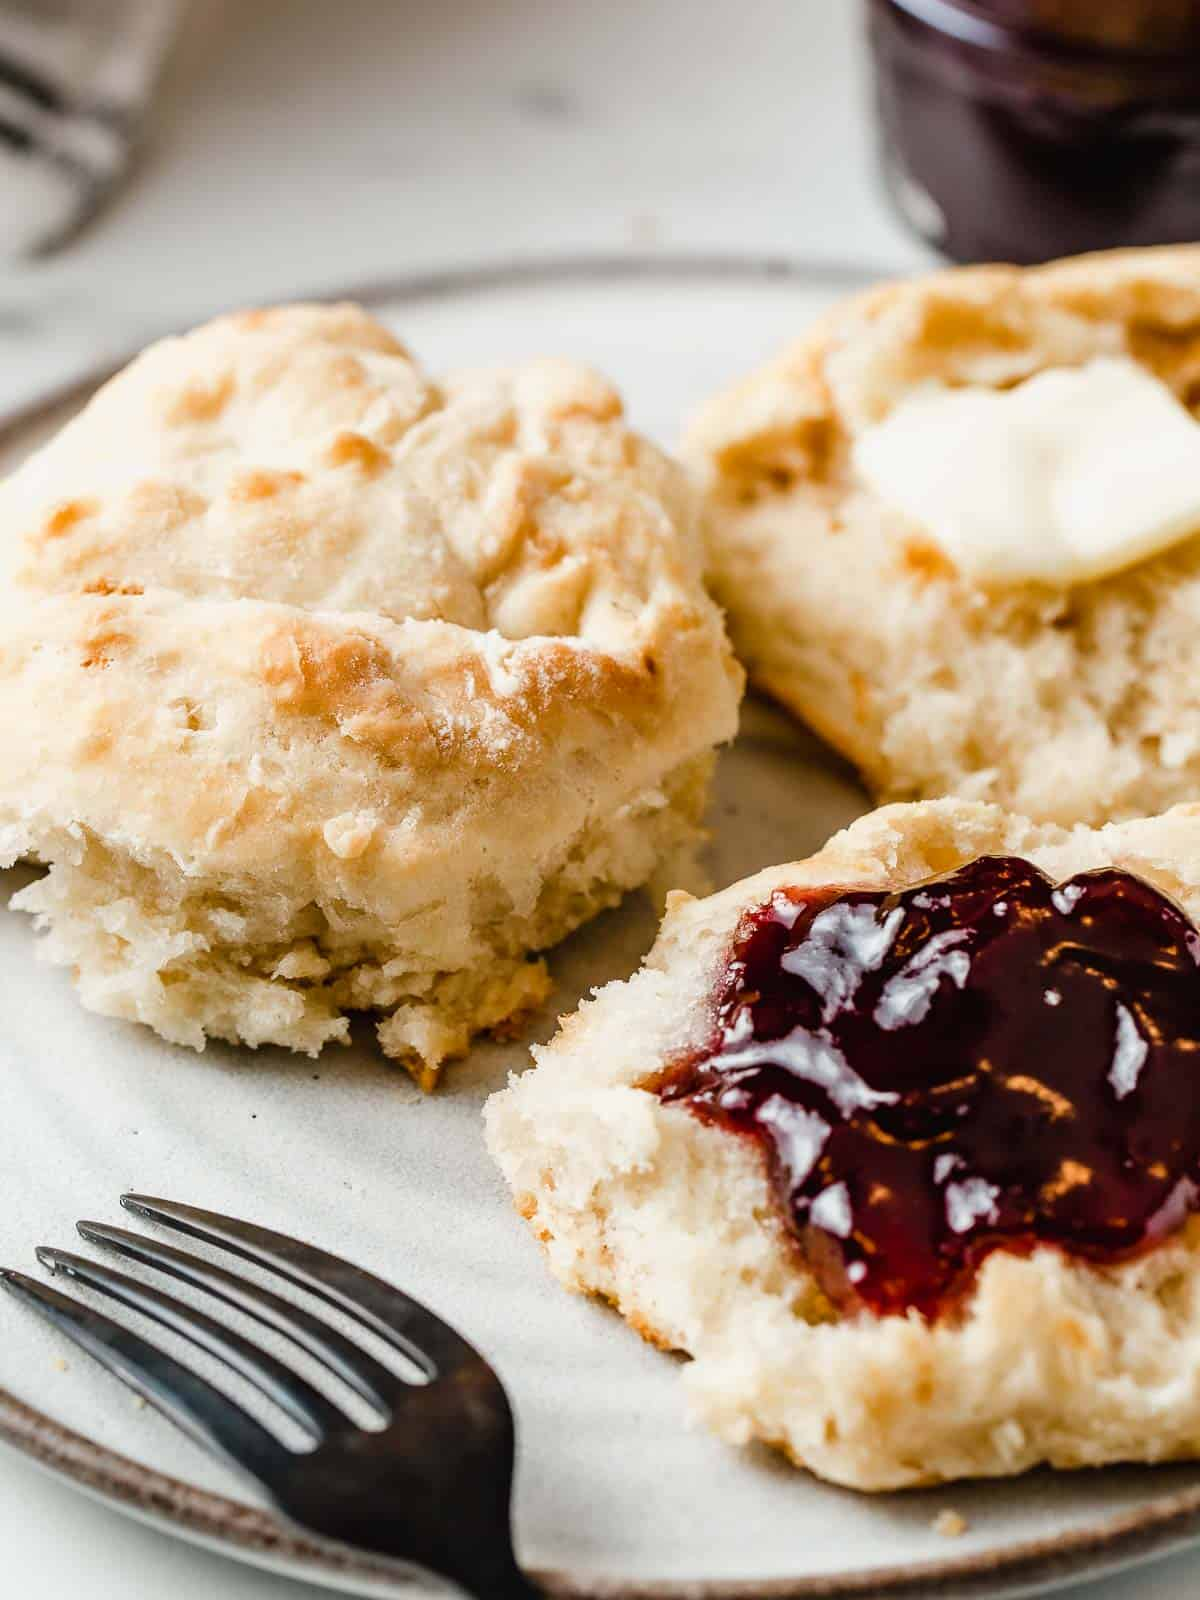 Sourdough biscuits with butter and jam in a plate.